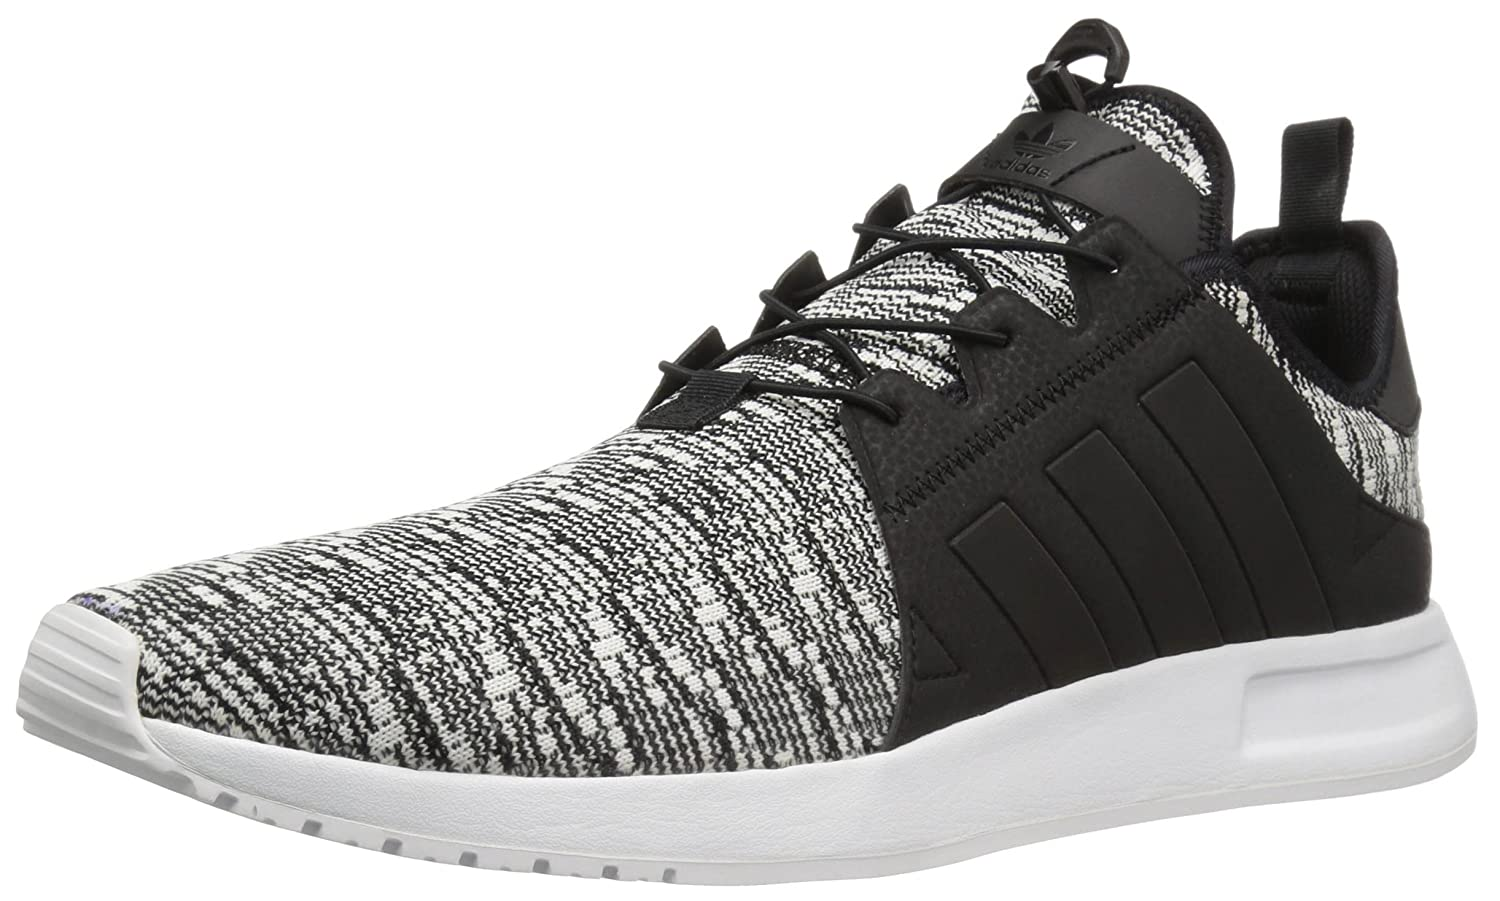 newest 715ba 3b0ac Amazon.com   adidas Originals Men s X PLR Sneakers, Lightweight,  Comfortable and Stylish with Speed Lacing System for Quick On-Off Wear    Shoes